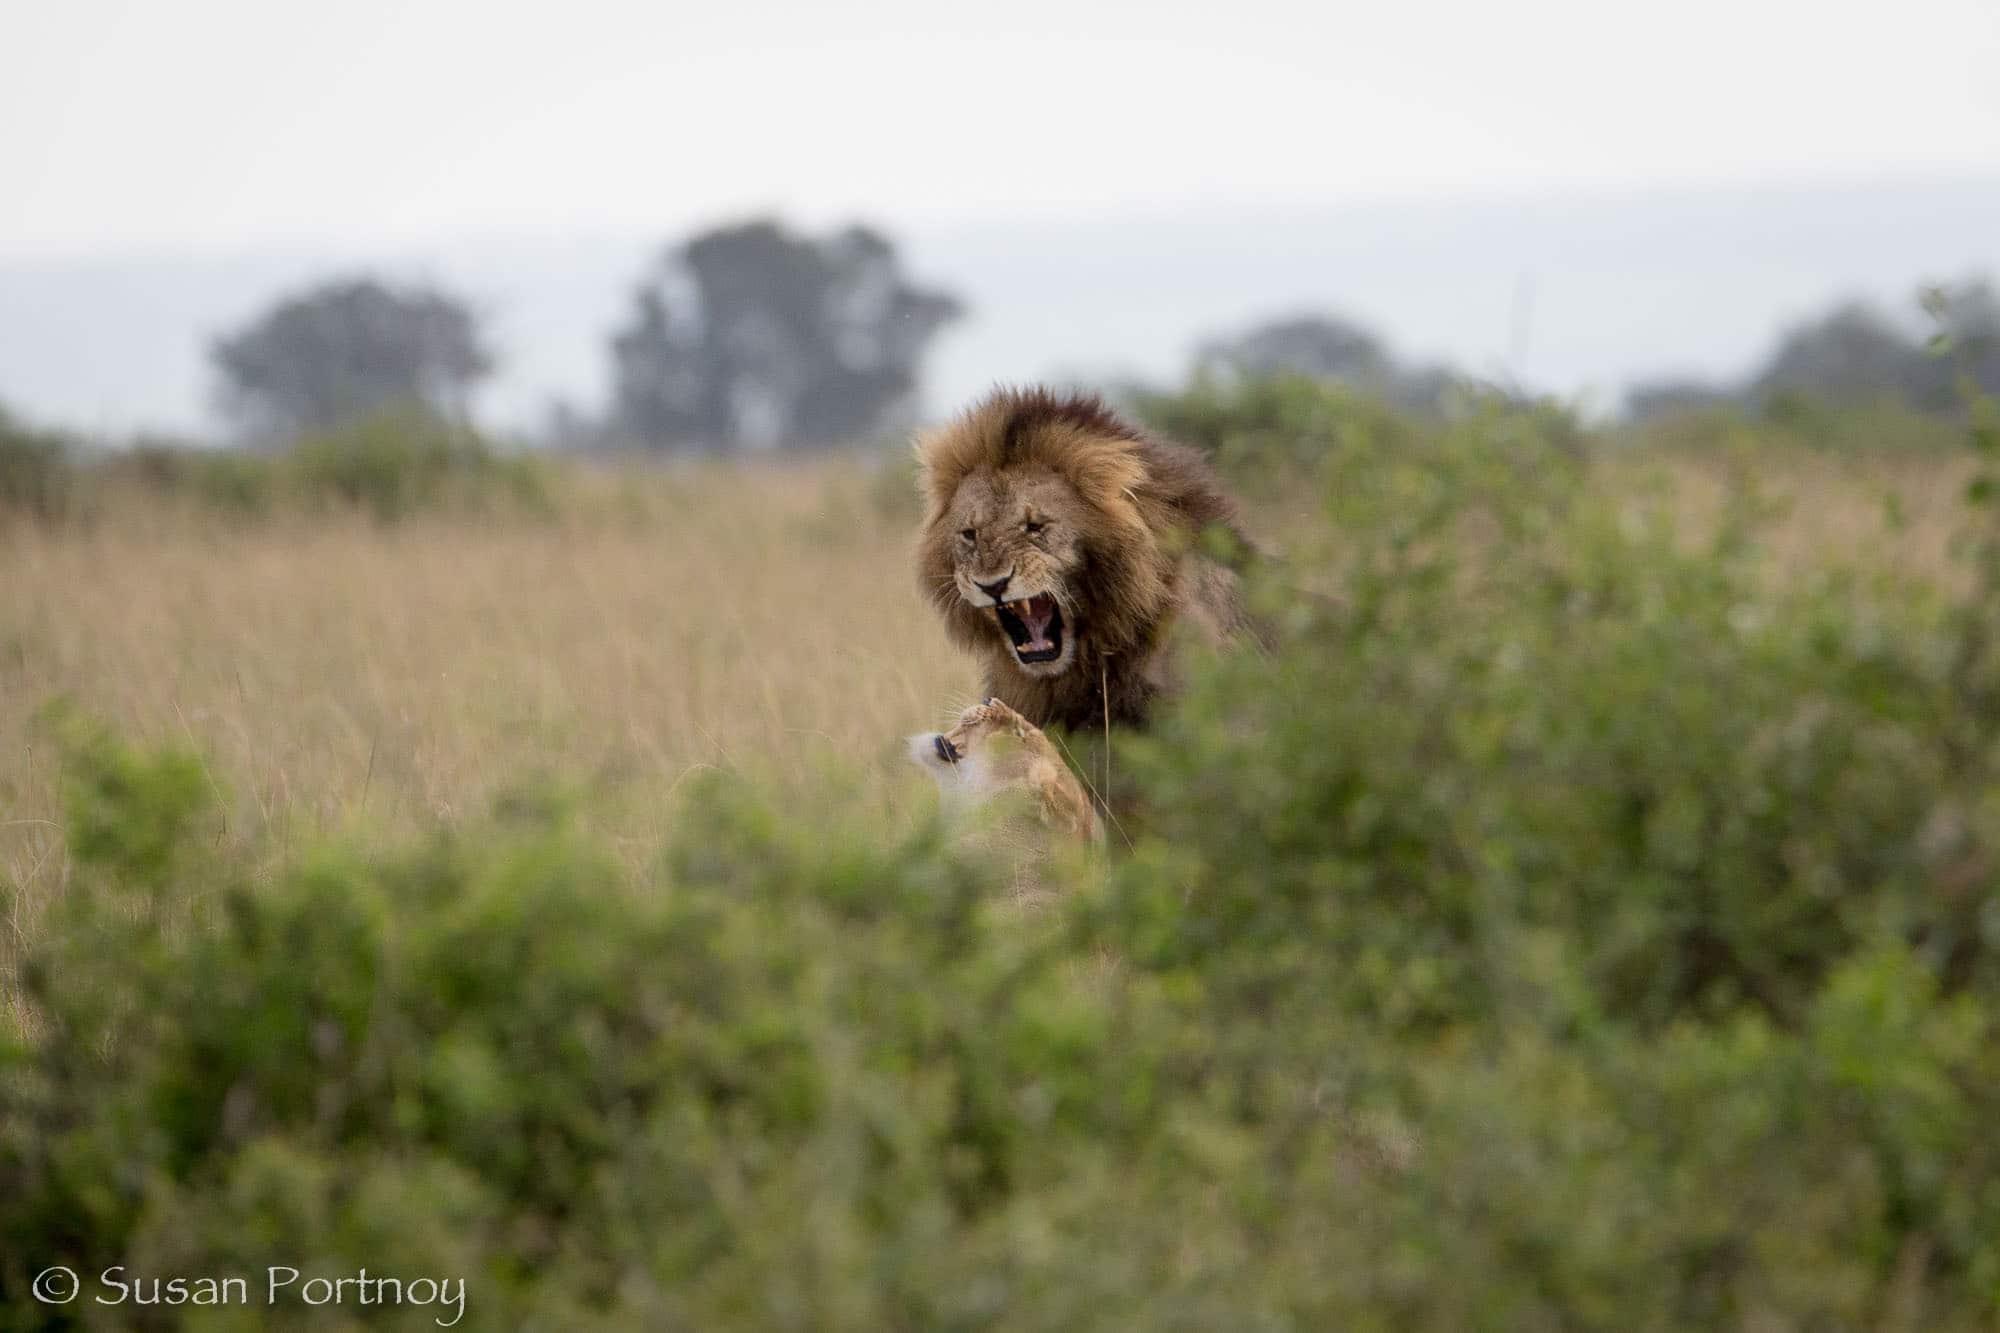 Sikio snarls at female in Mara Triangle, Kenya